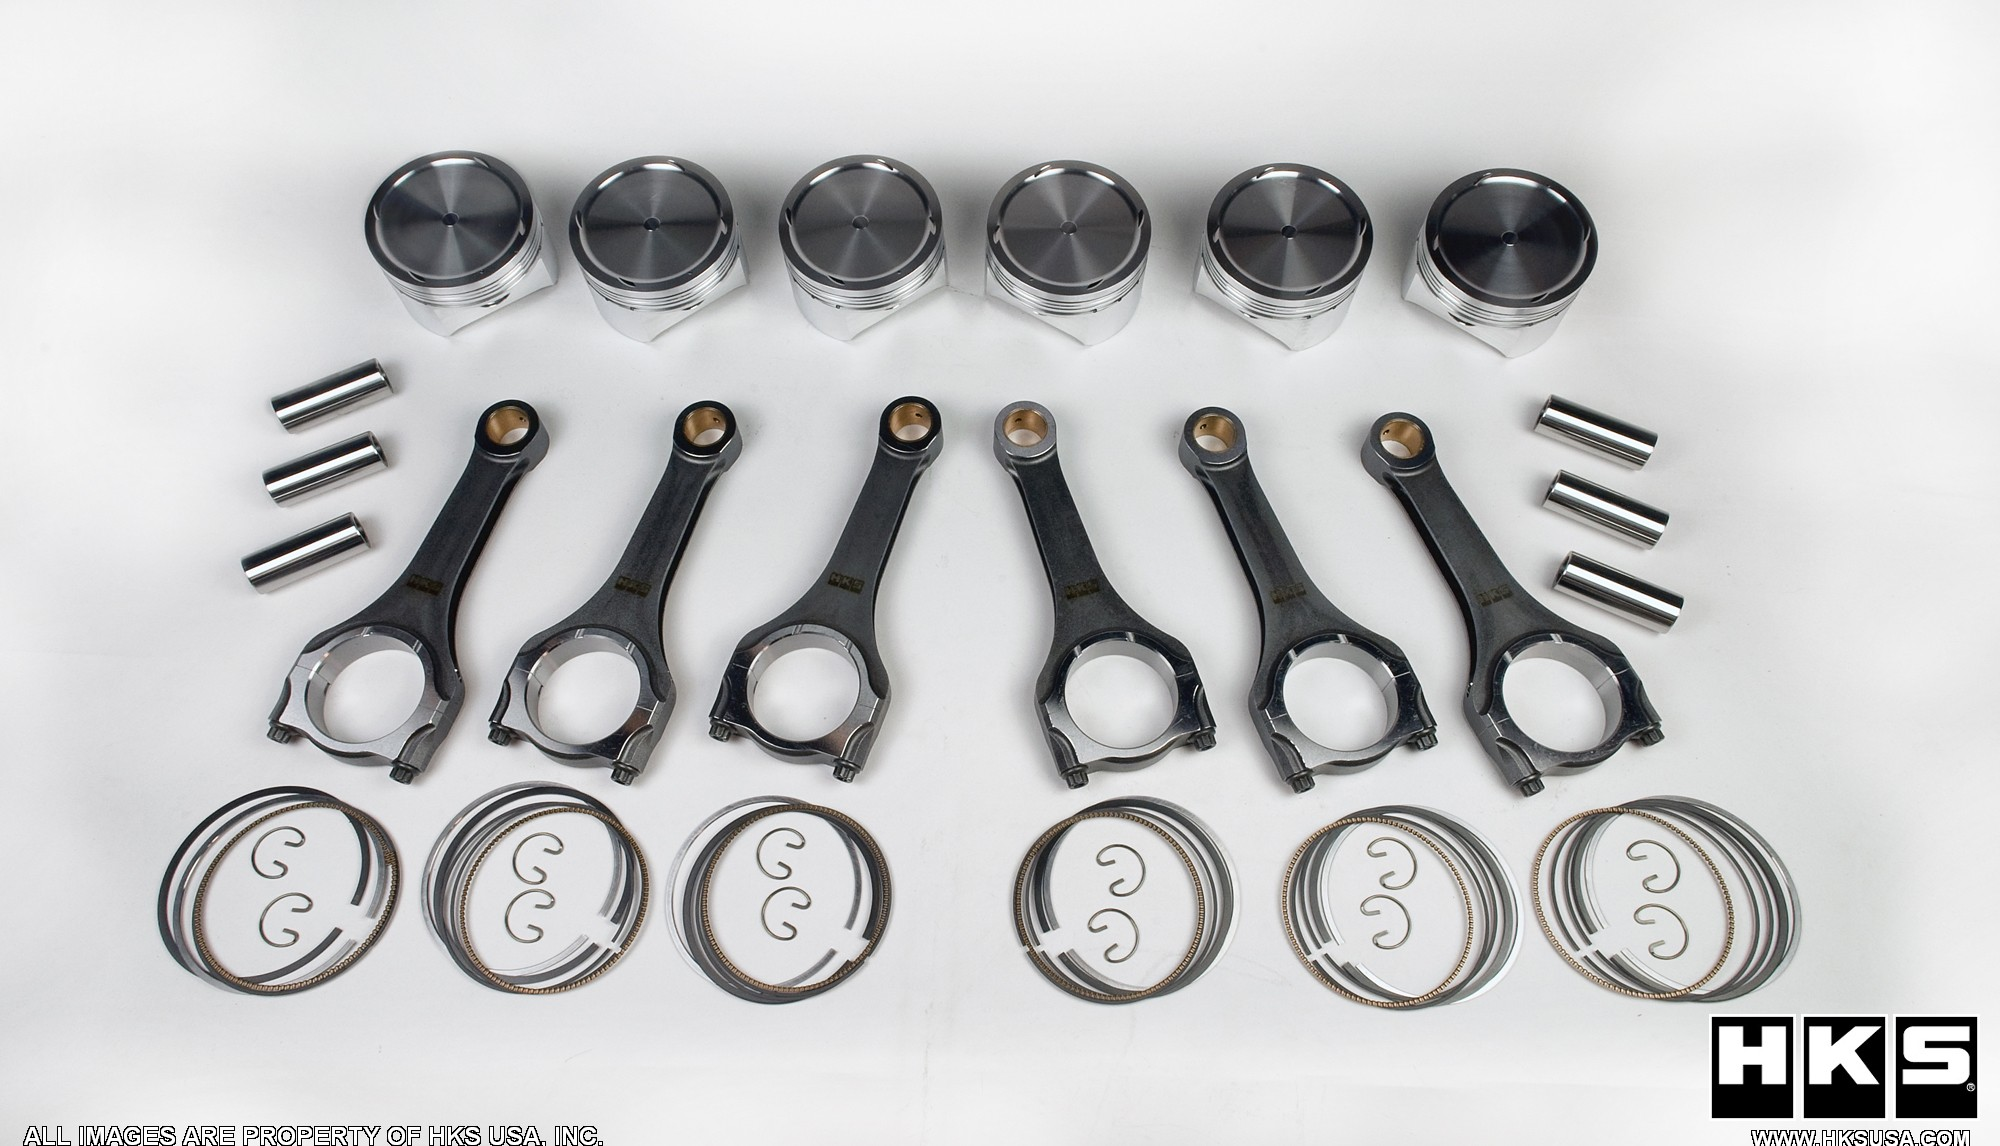 HKS Pistons & Connecting Rods 95.7mm Bore & 11.5:1CR Infiniti G35 2003-2006